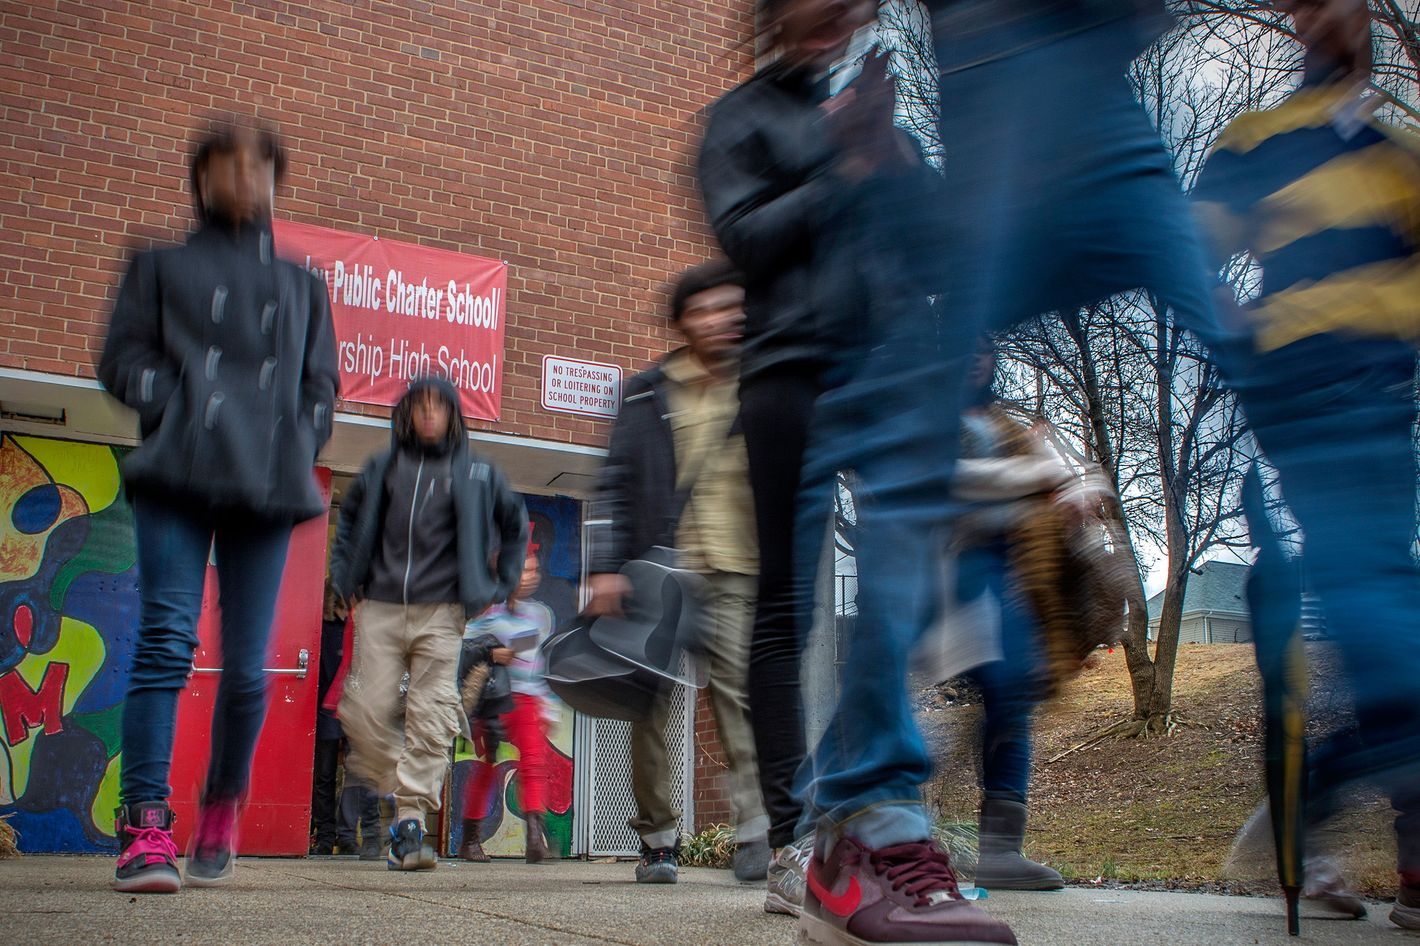 Students file out of the building at quitting time at the Maya Angelou charter school on February, 21, 2014 in Washington, DC.